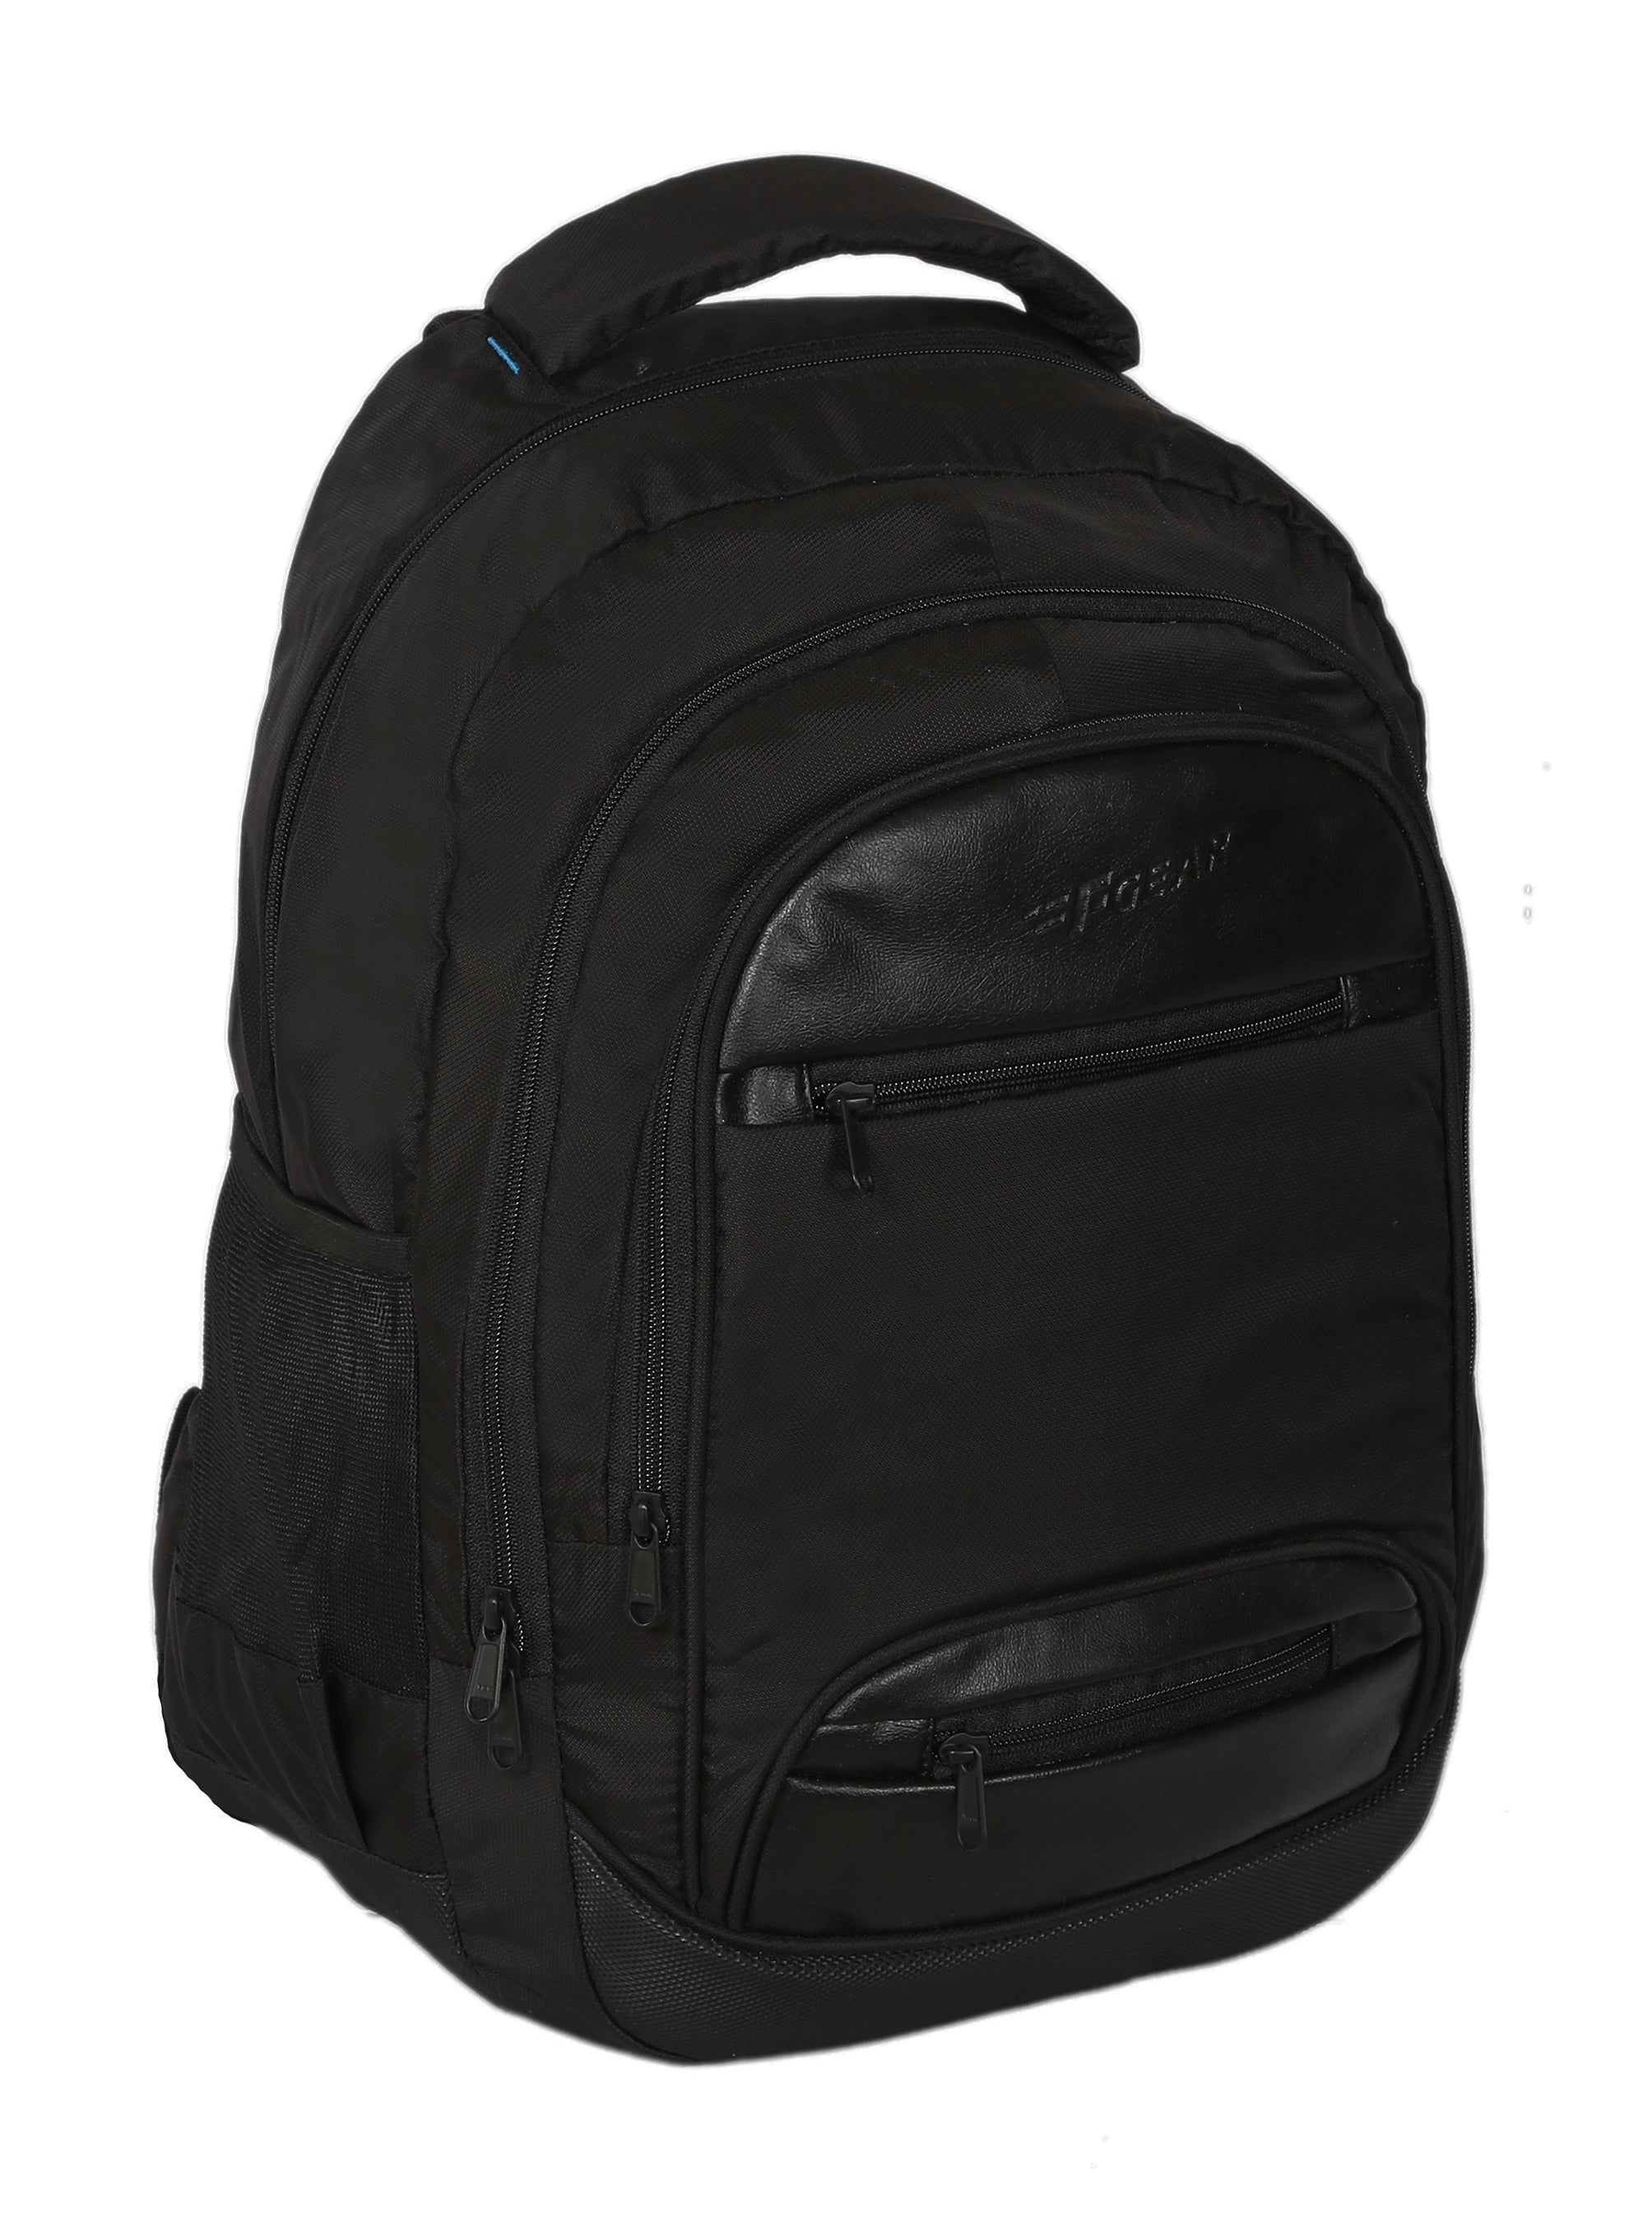 F Gear Perry V2 33 Ltrs Black Laptop Backpack (3175)